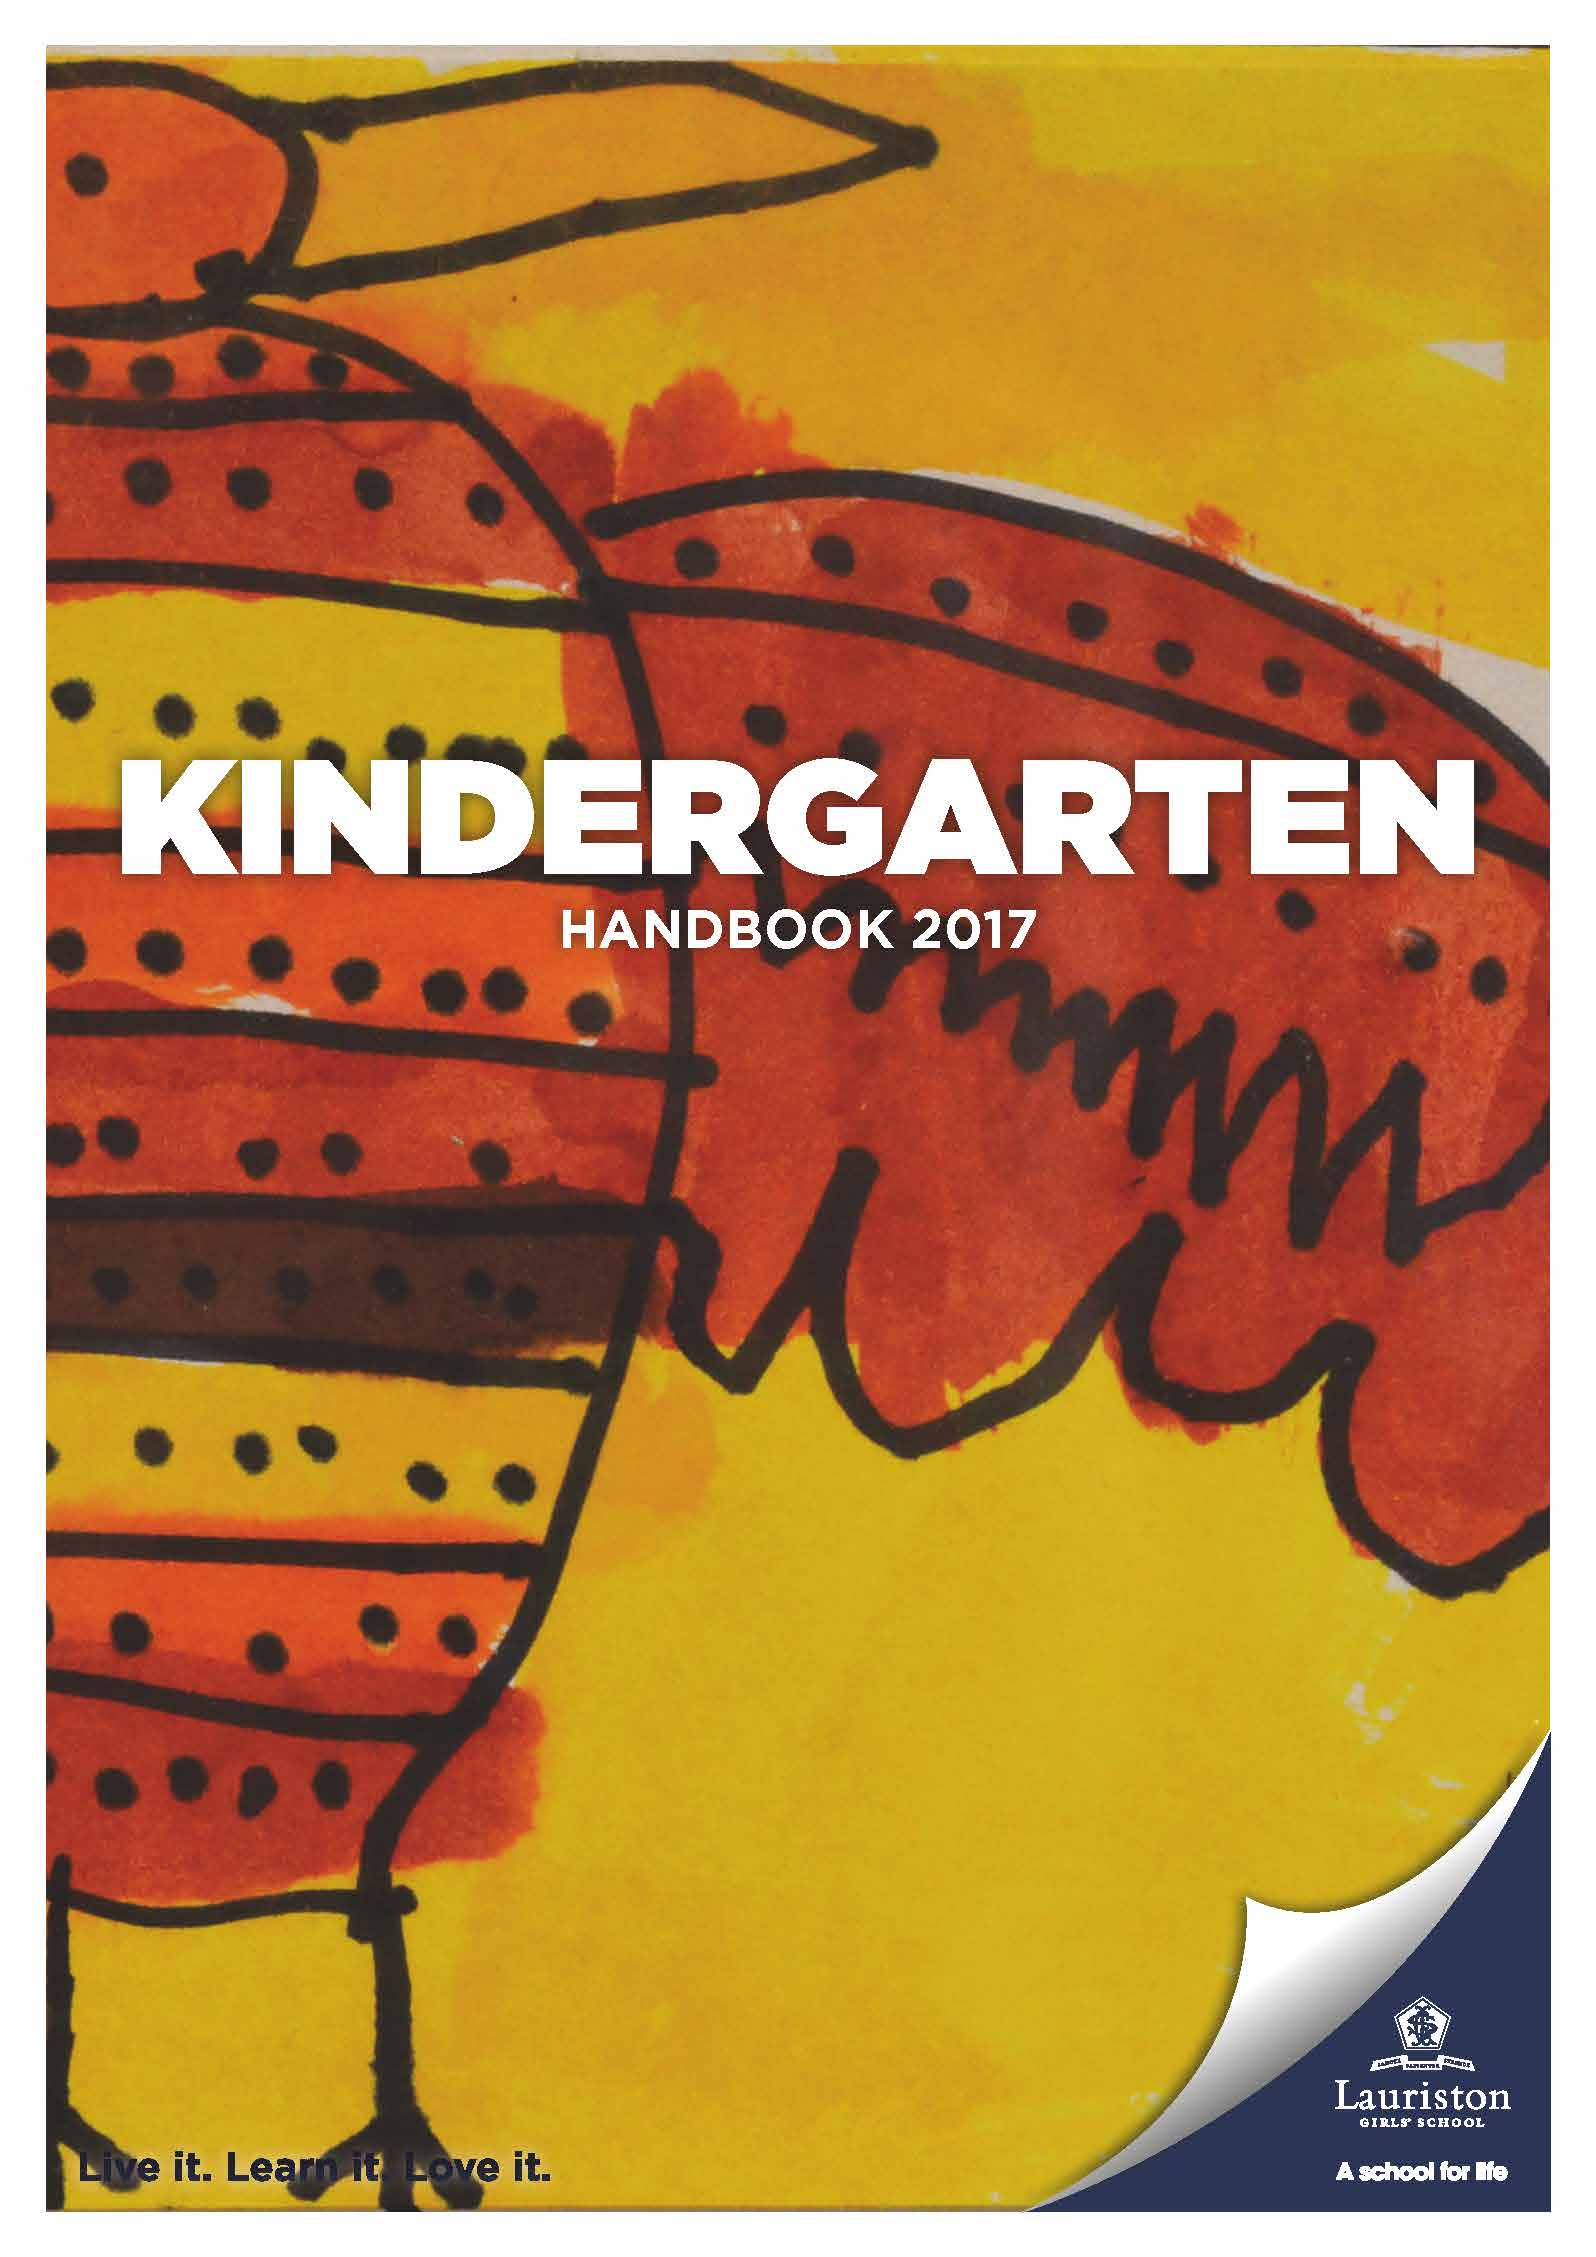 Pages from Kindergarten Handbook